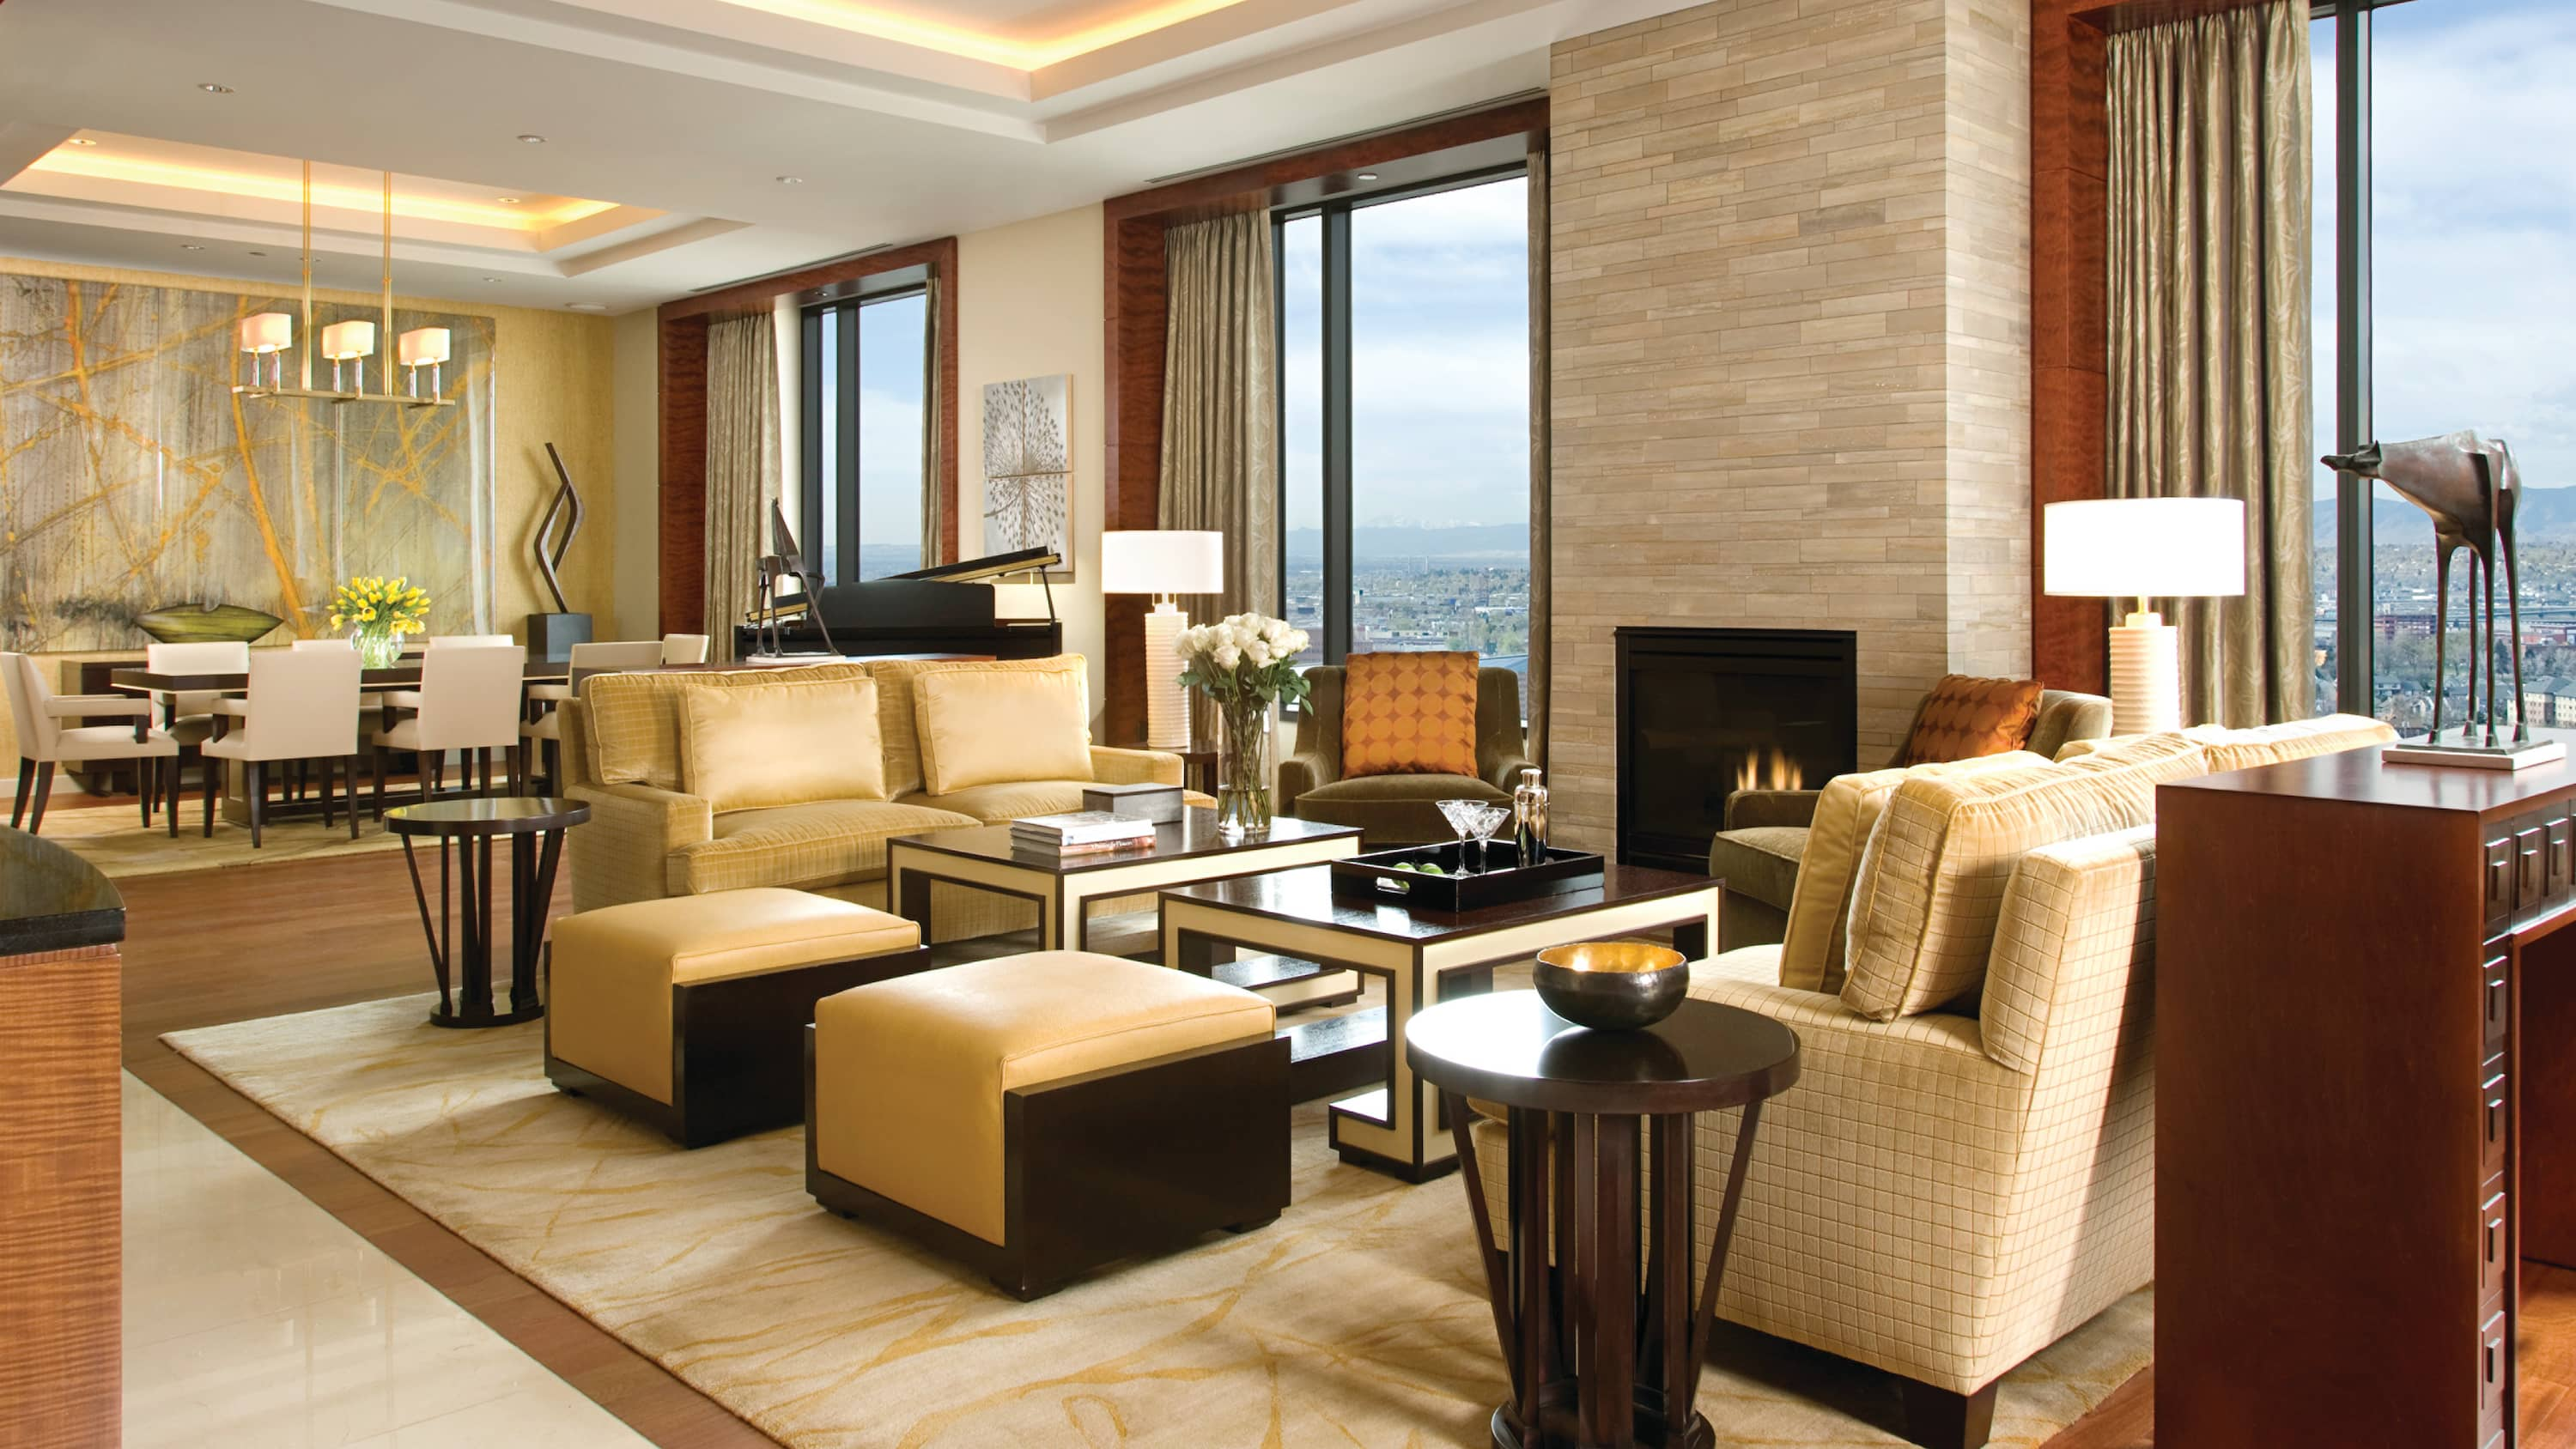 The Presidential Suite at Four Seasons Hotel in Denver